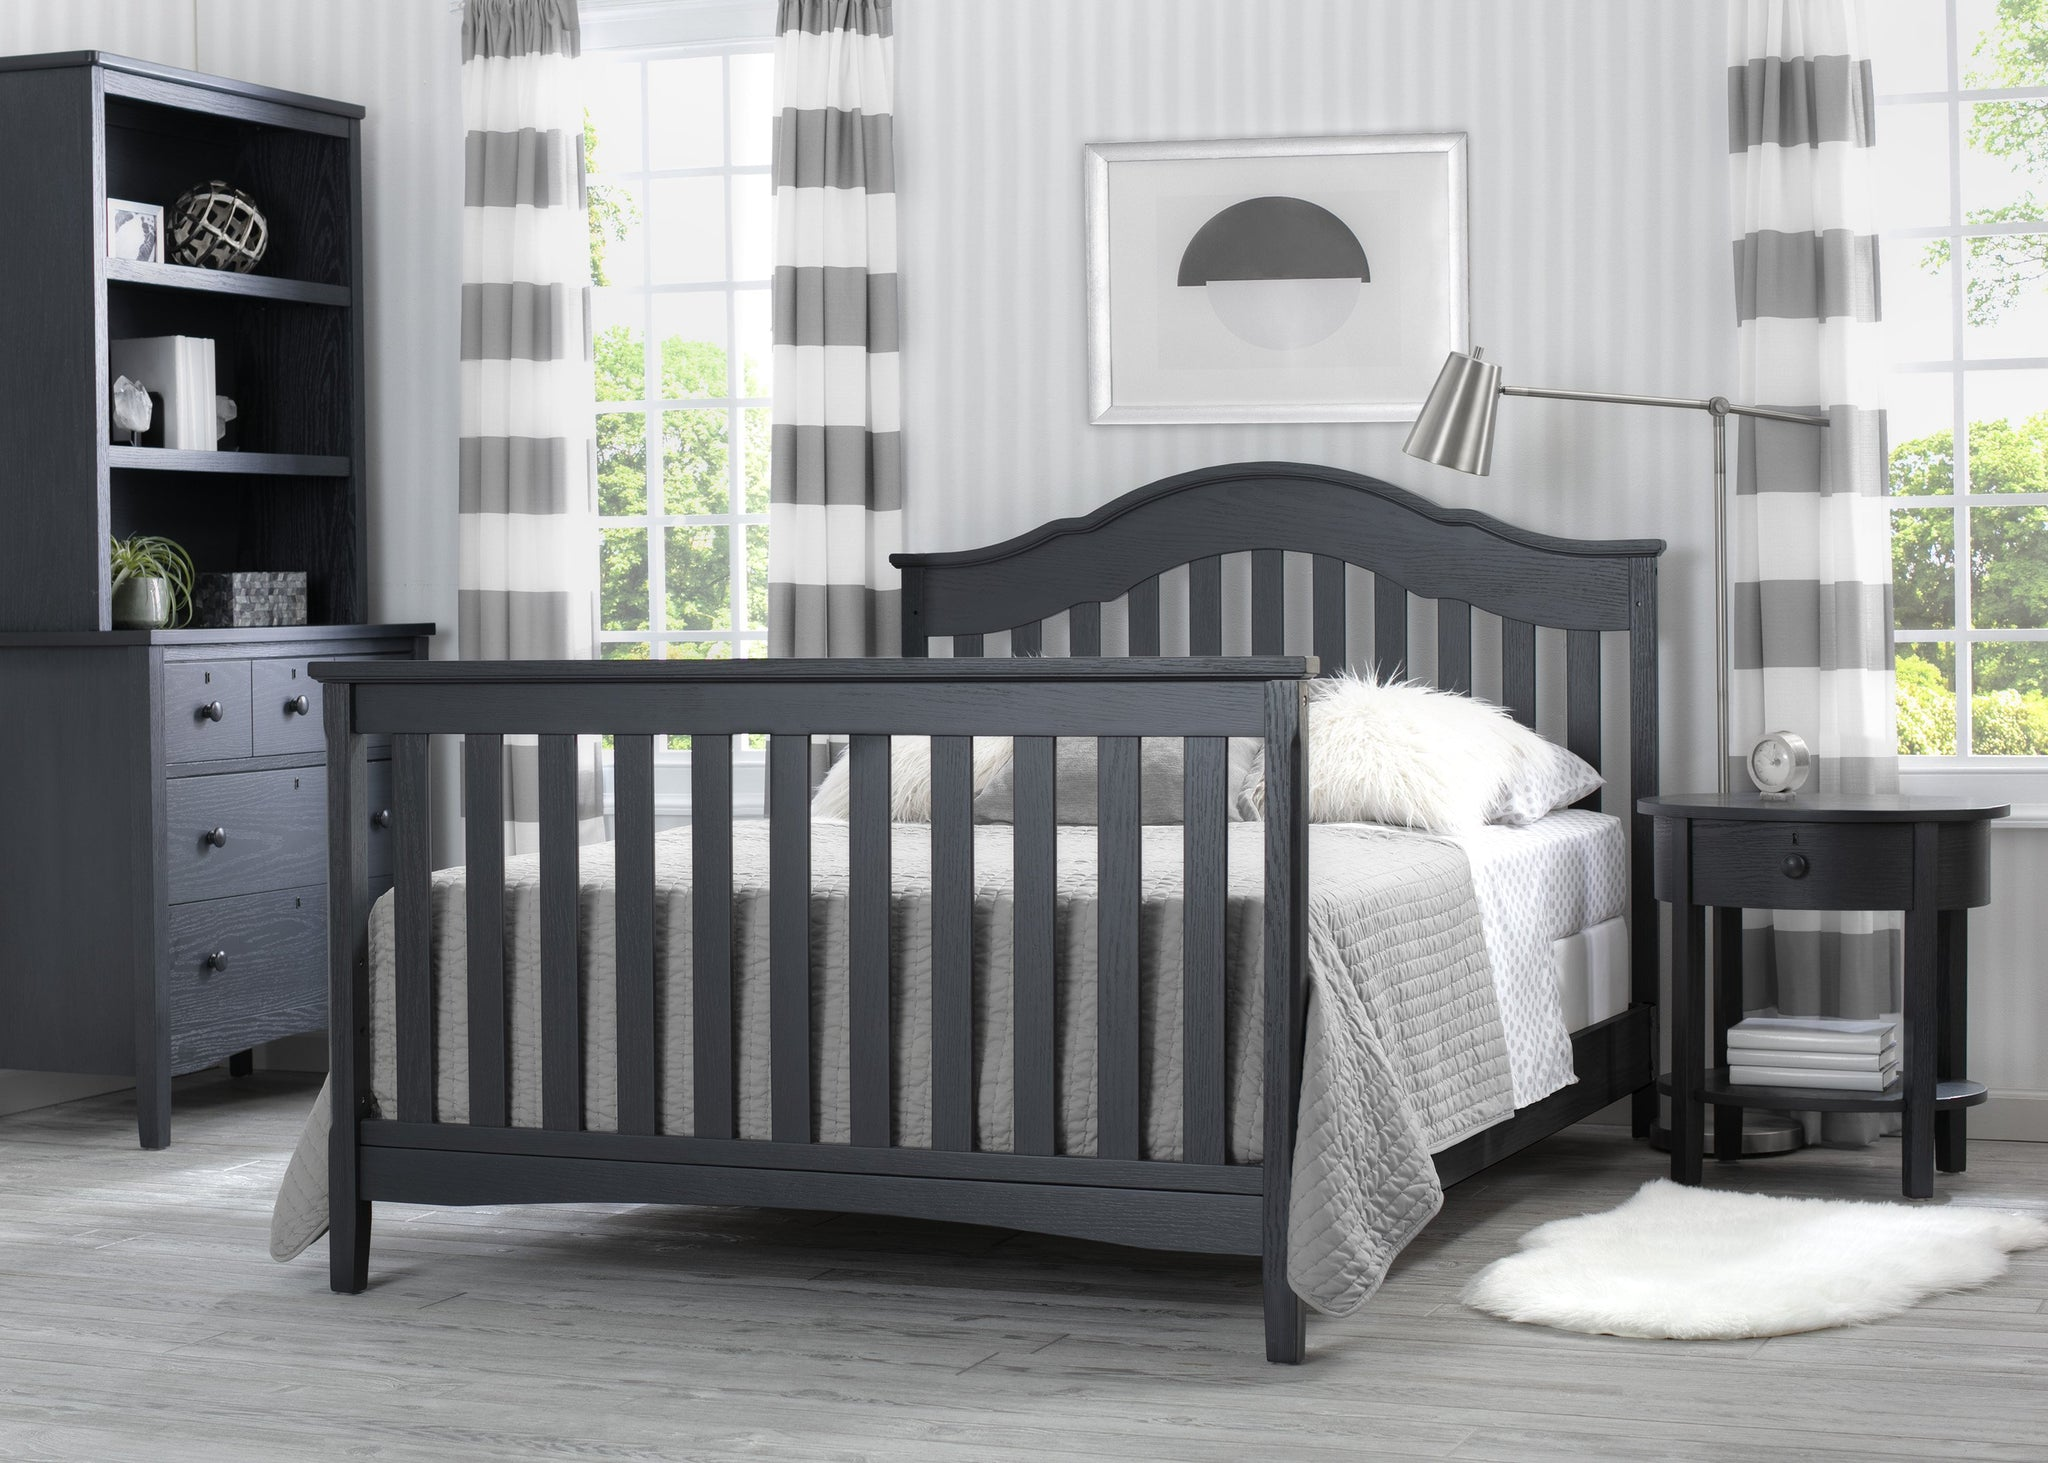 Delta Children Textured Midnight Grey (1347) Farmhouse Nightstand with Drawer, Hangtag View